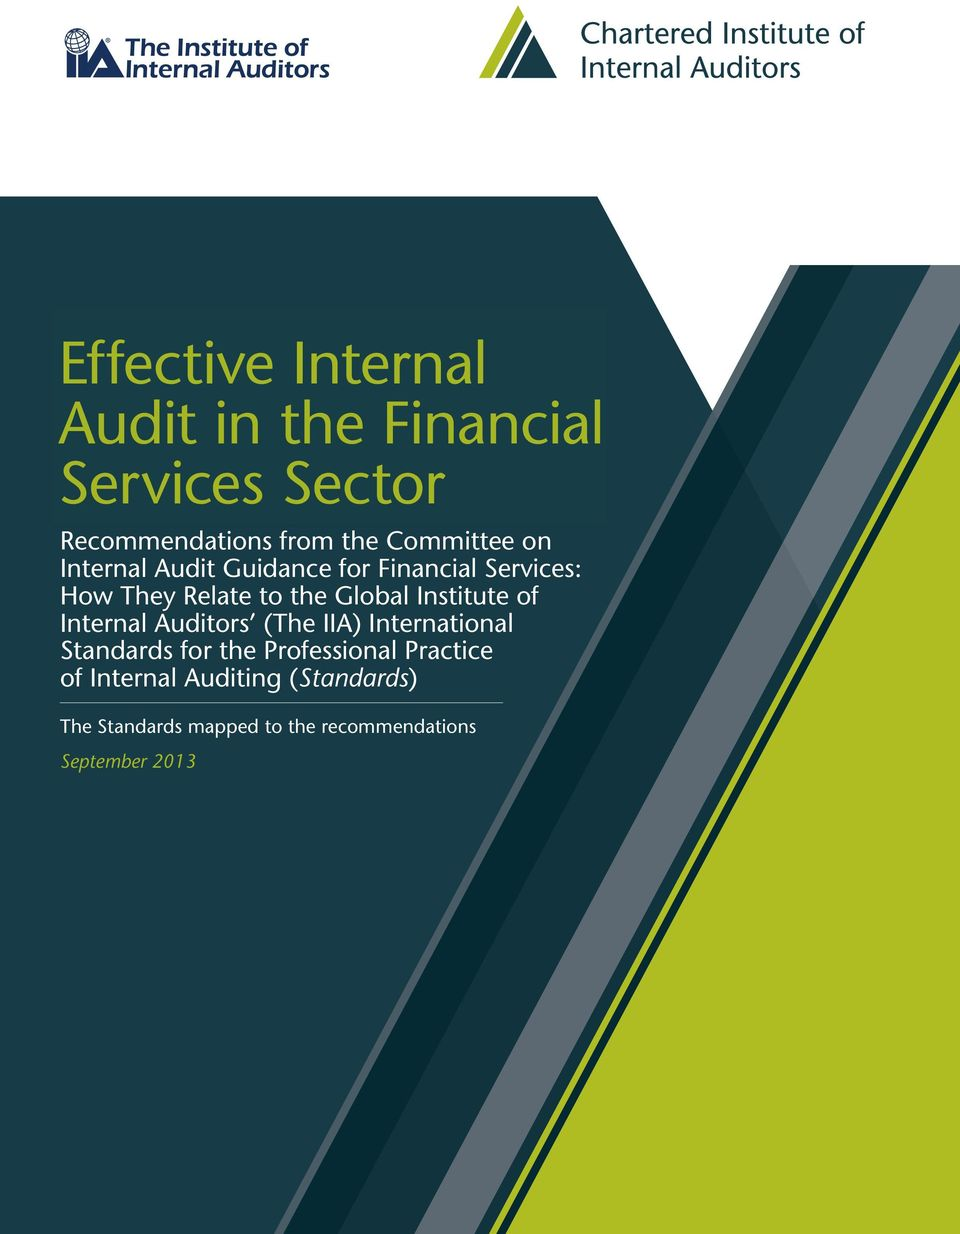 Global Institute of Internal Auditors (The IIA) International Standards for the